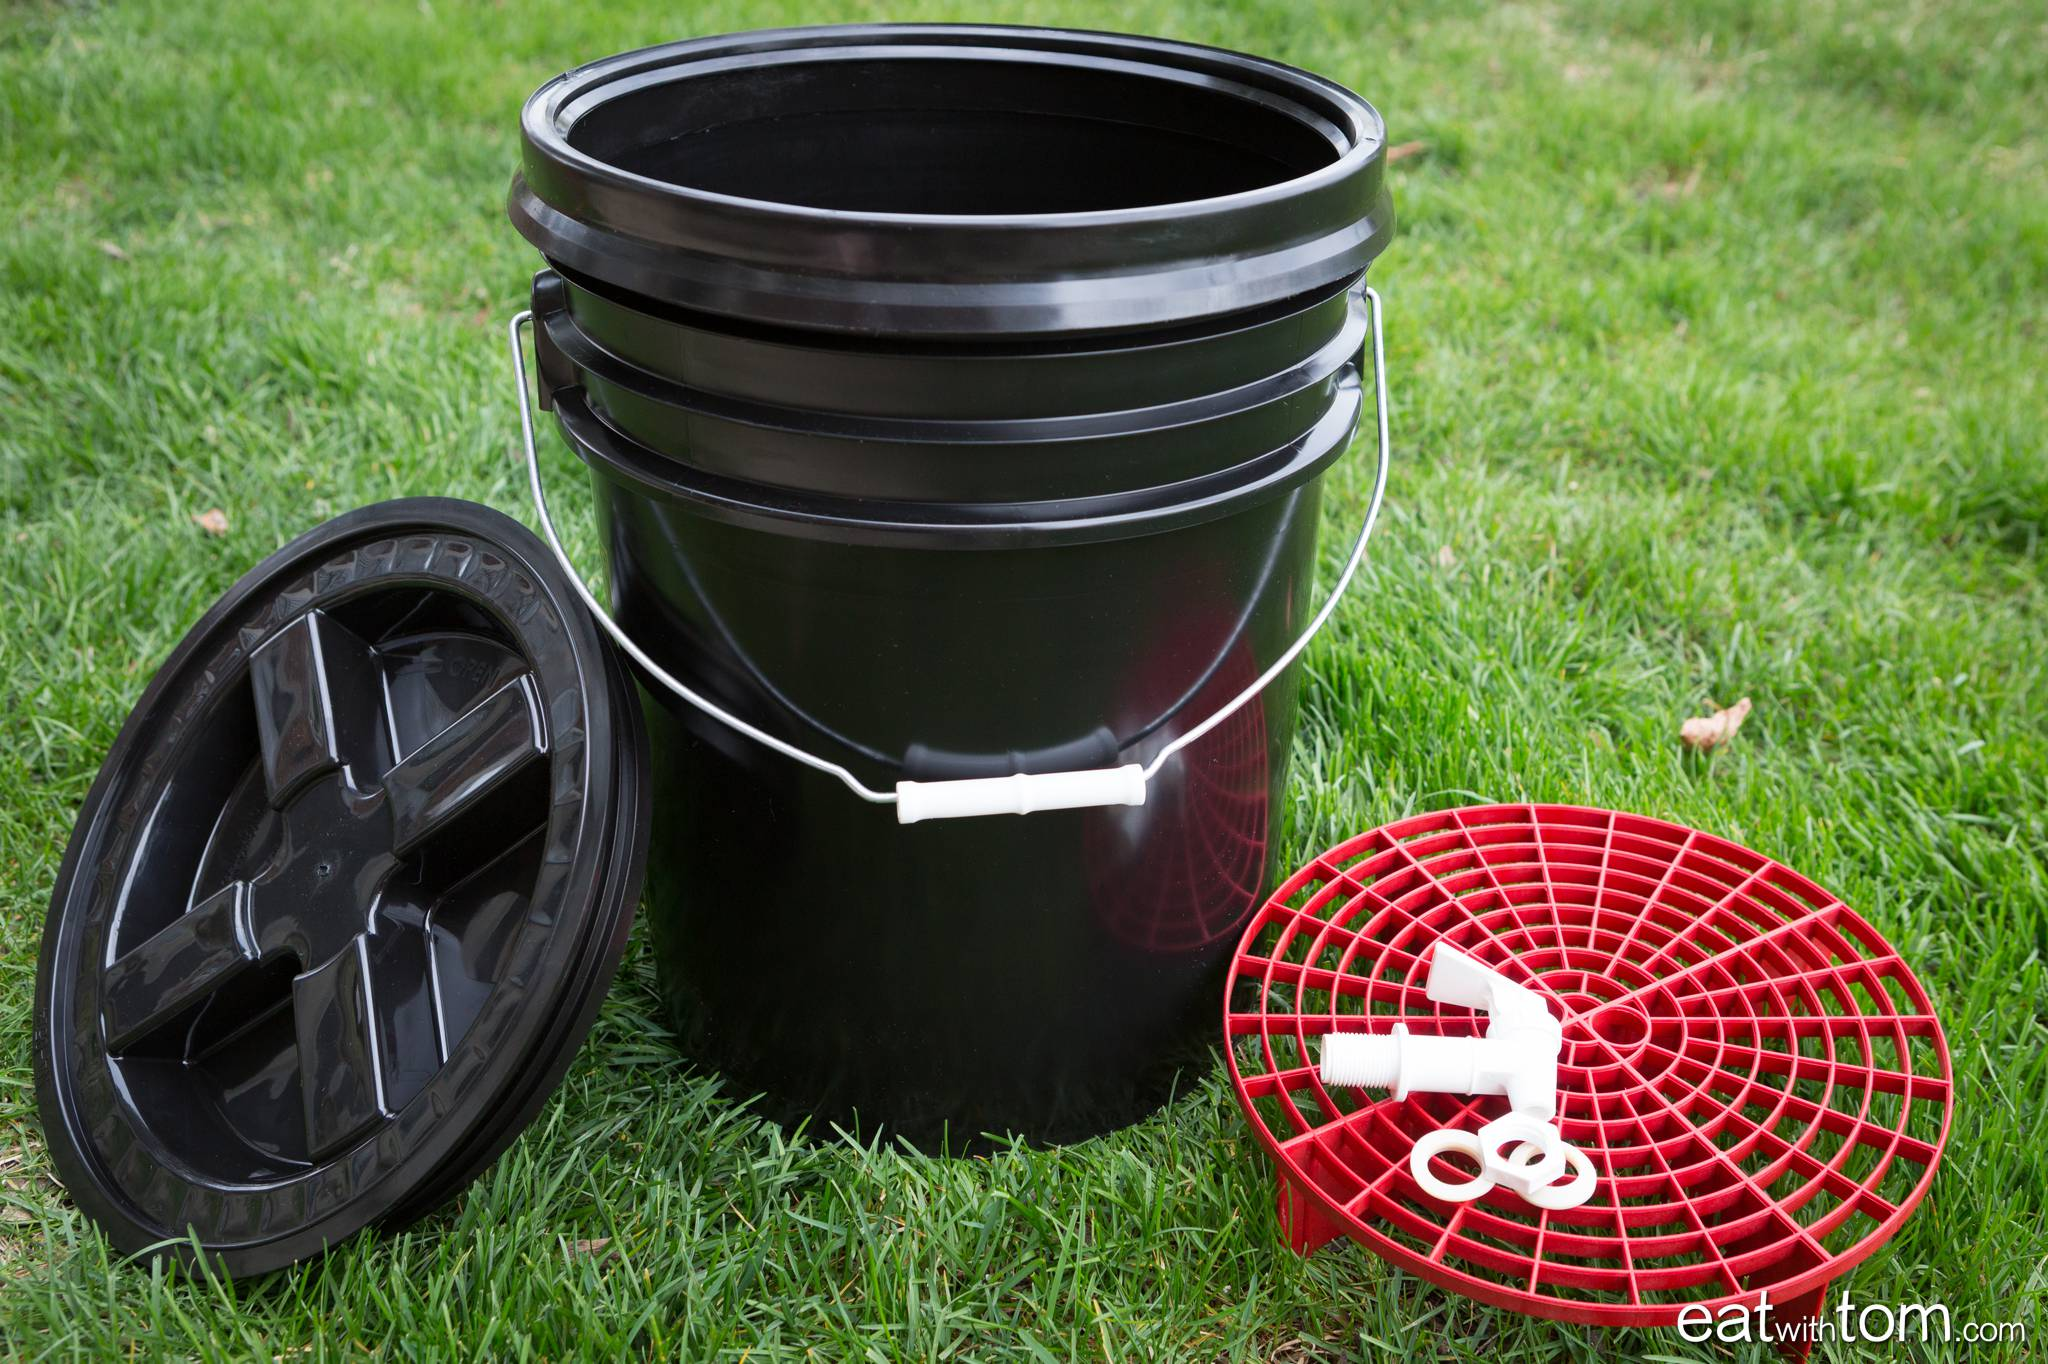 Diy Bokashi Composter Instructions And Images Eat With Tom